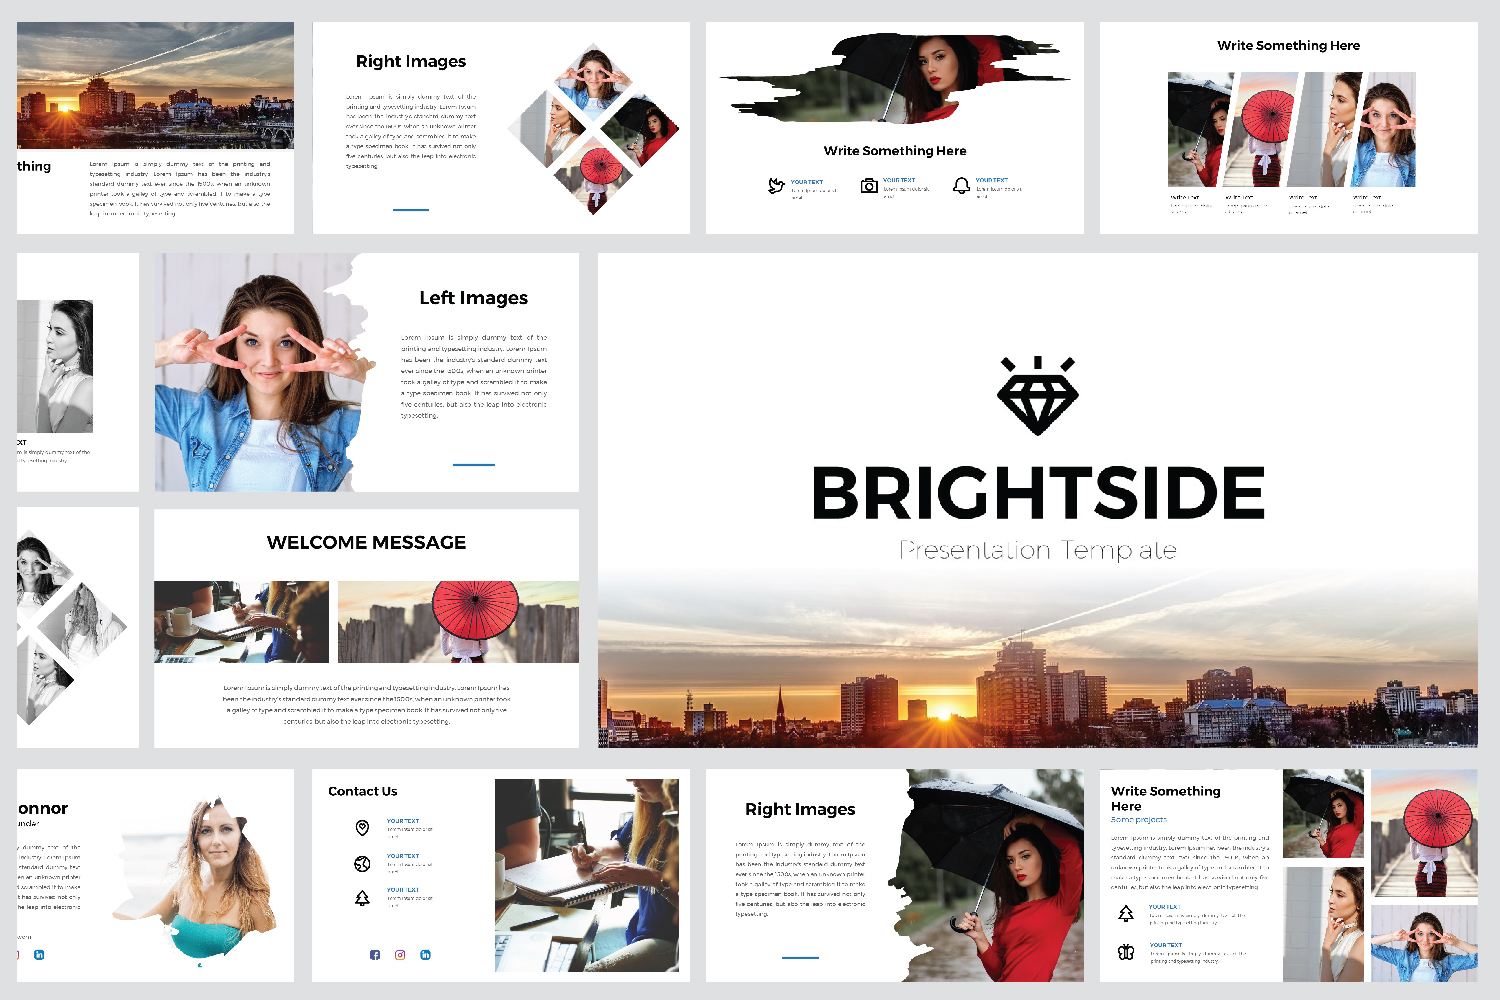 Brightshide PowerPoint Template example image 1